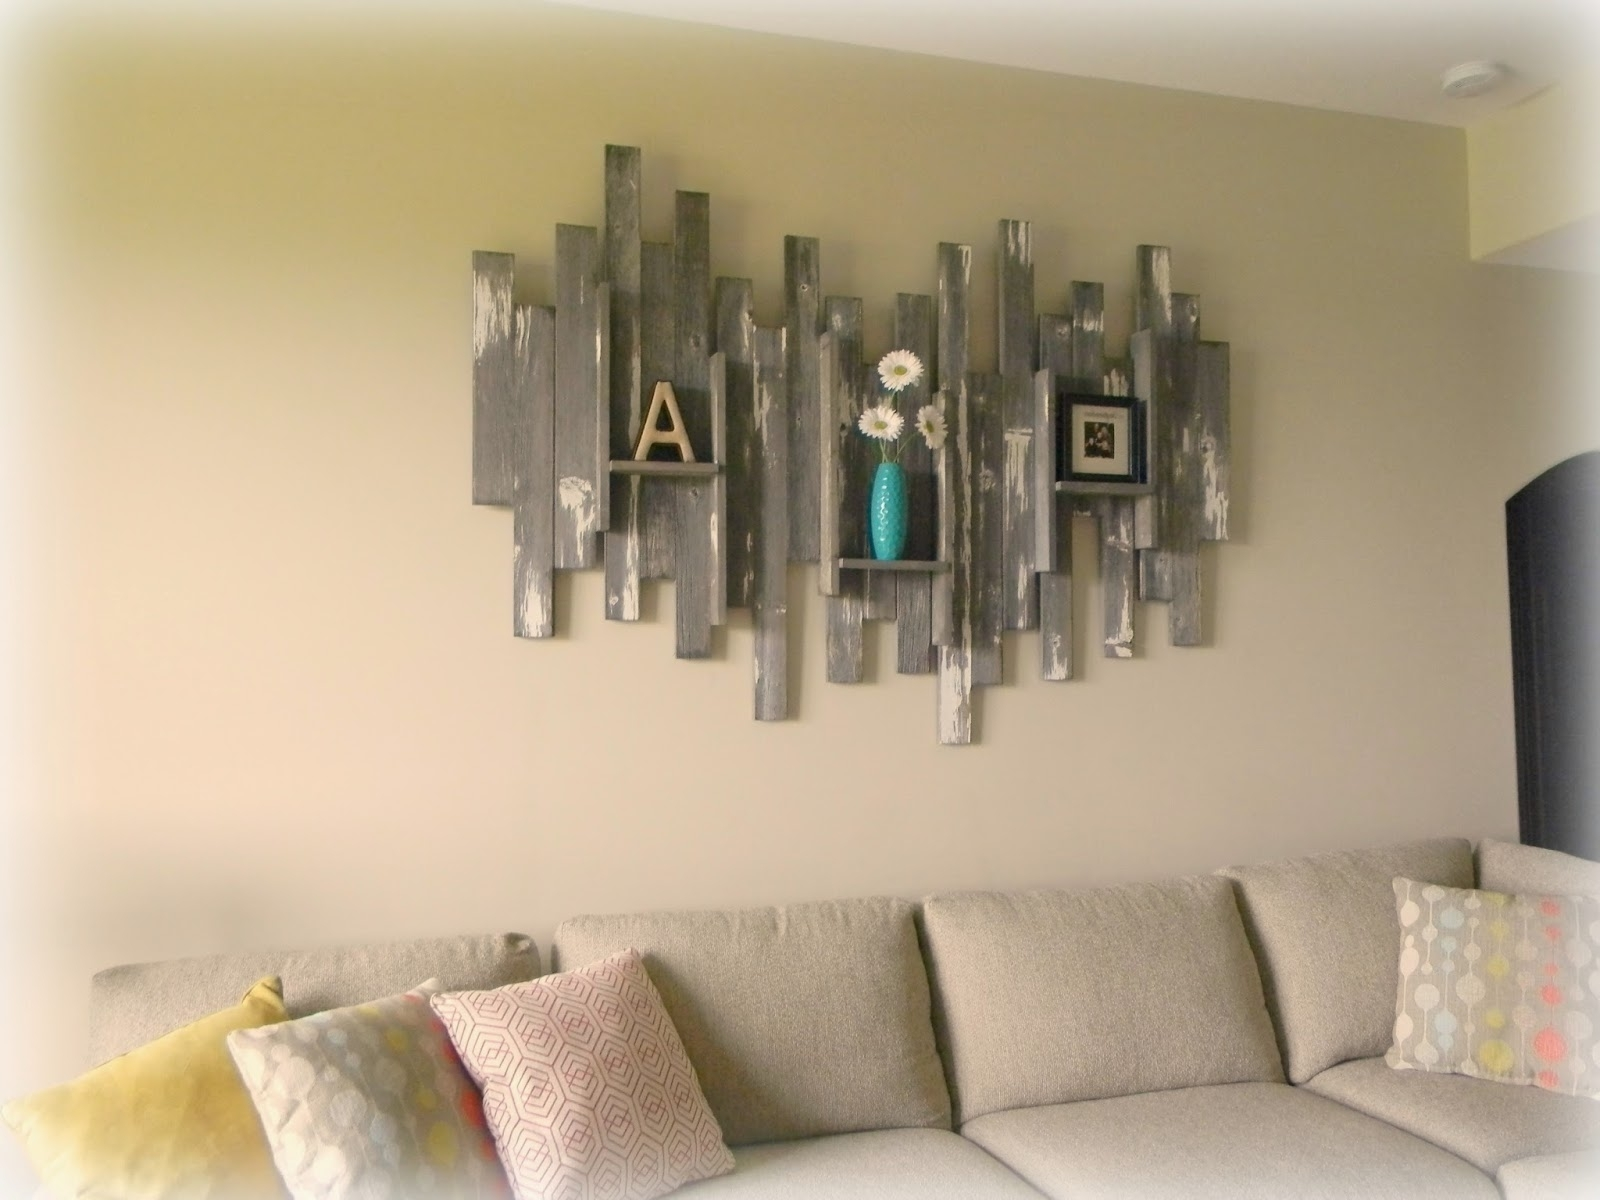 Forever Decorating Barn Wood Wall Art Basement – Home Art Decor (View 9 of 15)